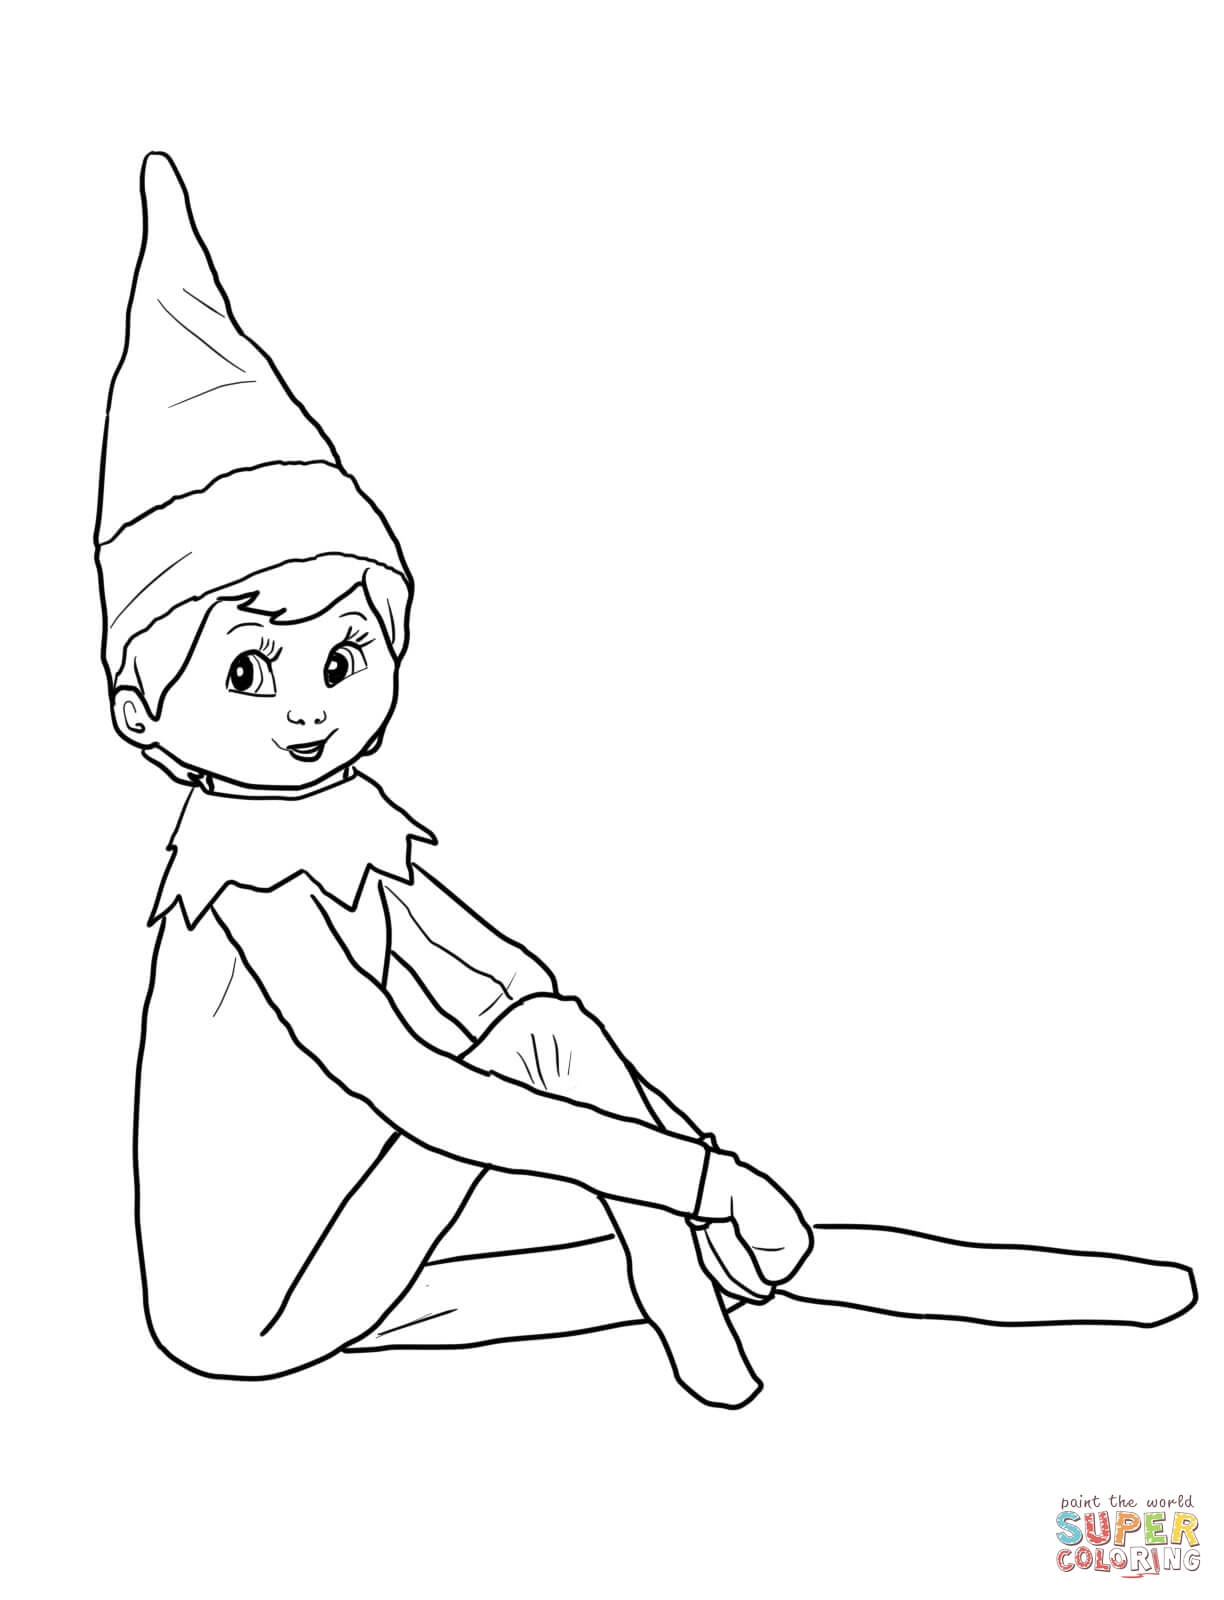 elf on the shelf coloring pages - elf on the shelf